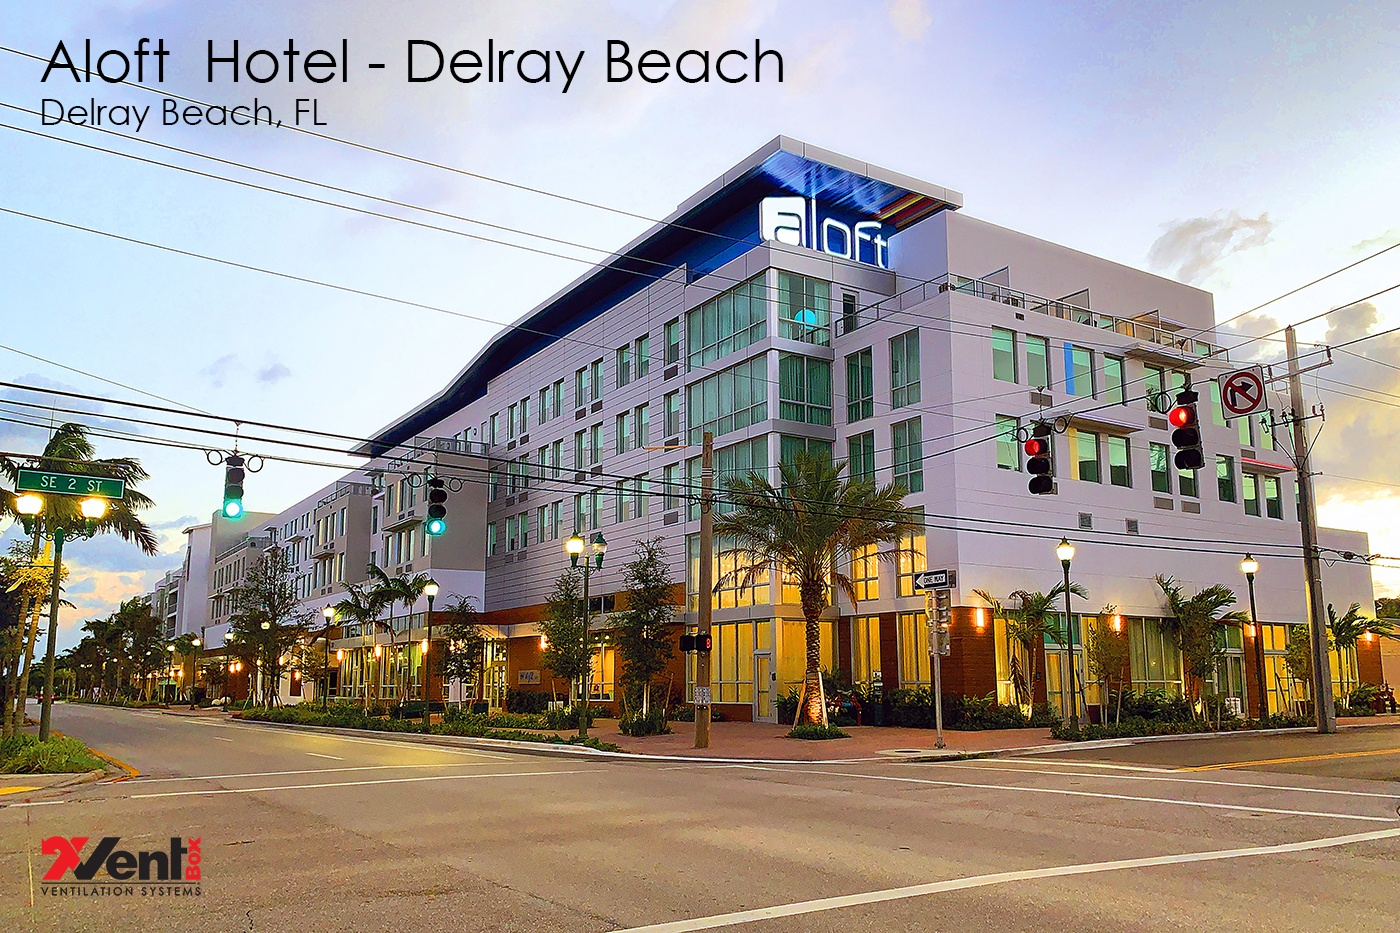 Aloft Hotel - Delray Beach